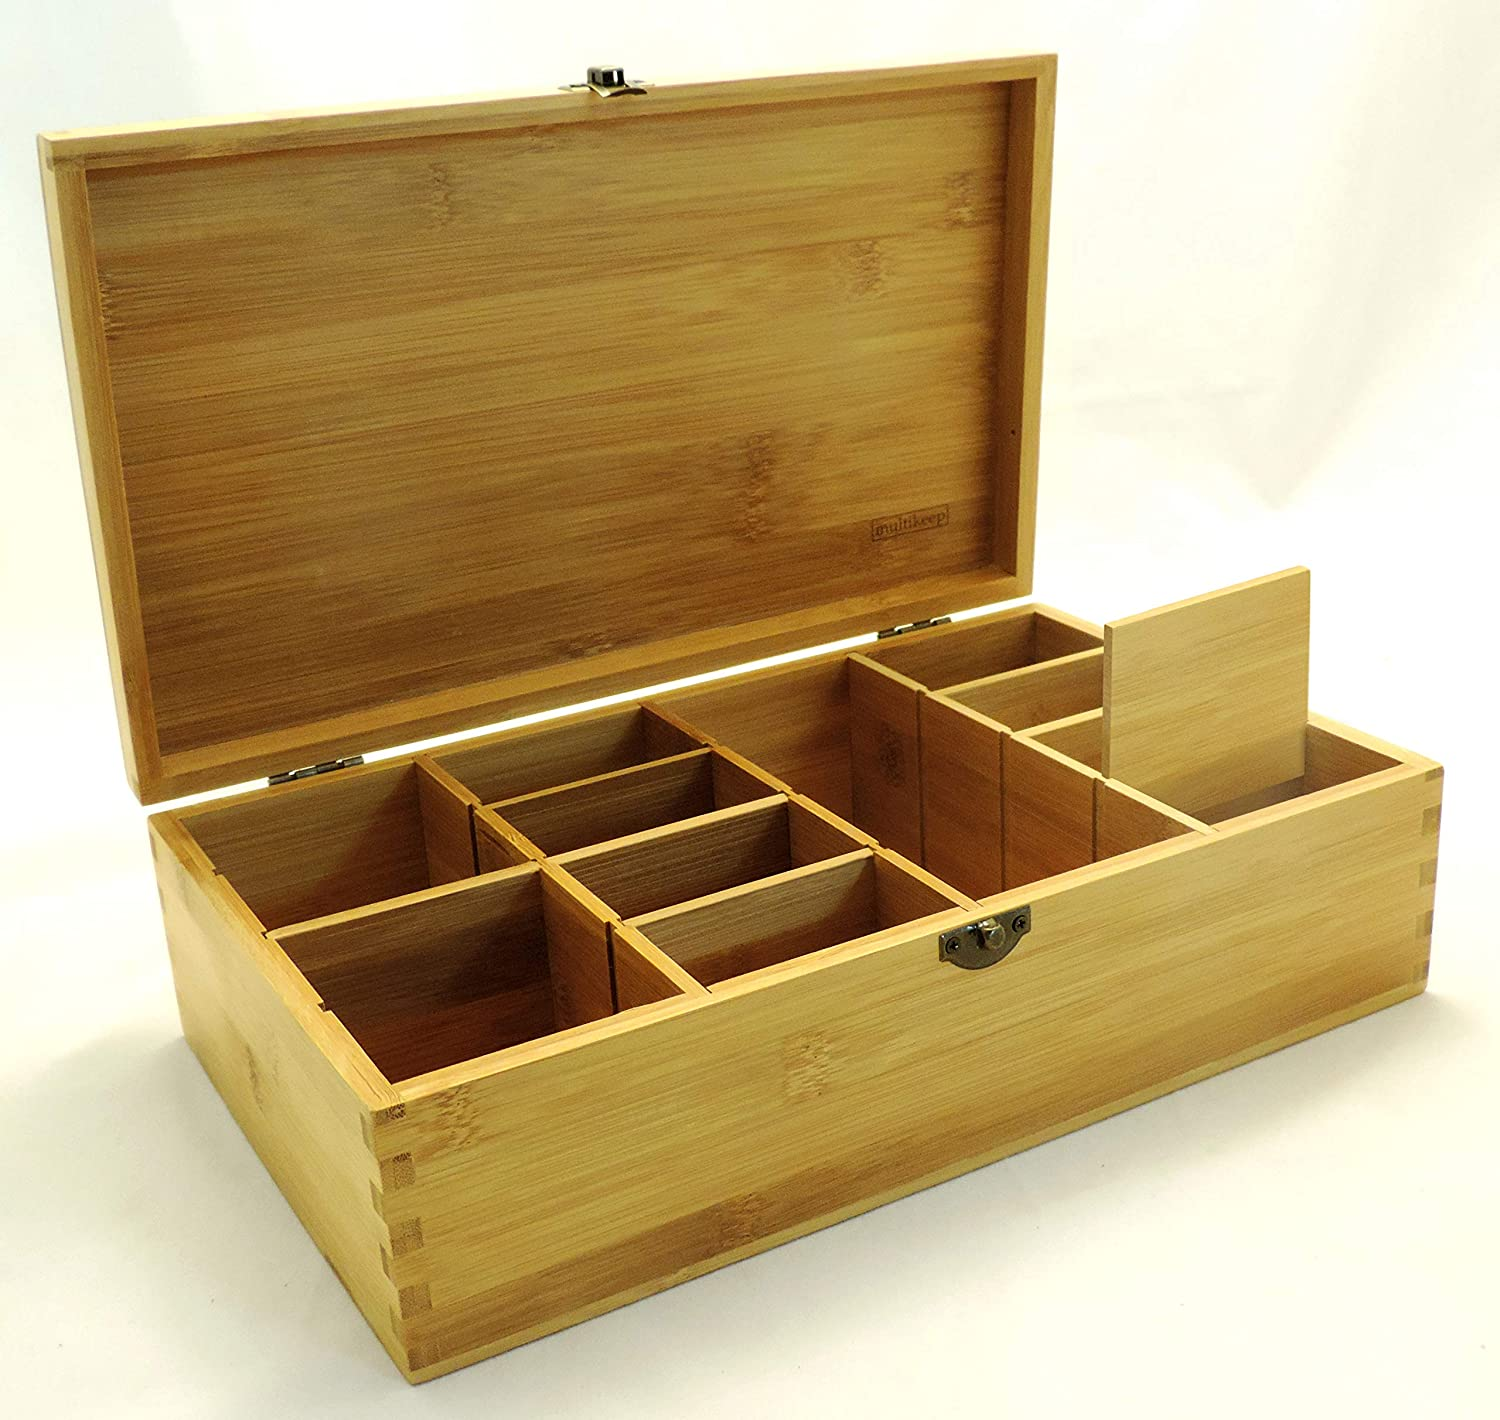 Unfinished Wooden Deck Box with Adjustable Dividers to Organize Your Cards